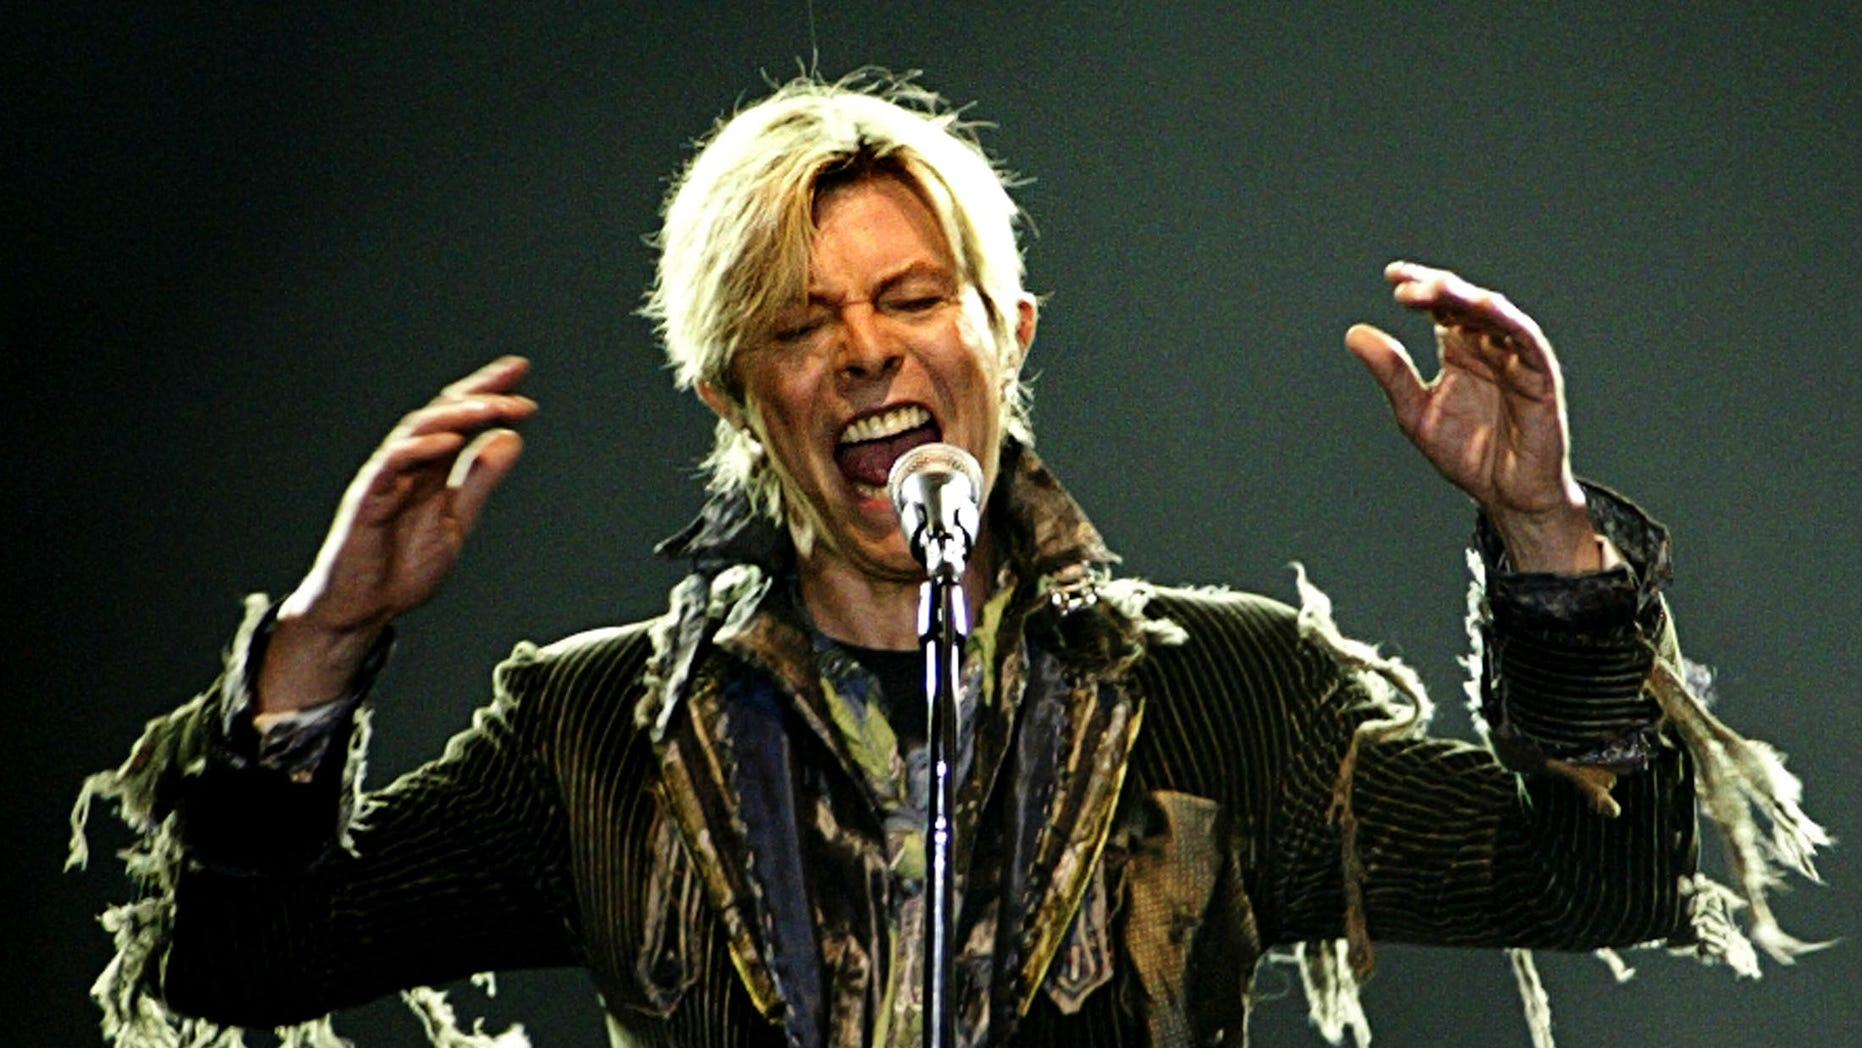 """June 23, 2004. British singer David Bowie performs in a concert during his worldwide tour called """"A Reality Tour"""" at T-mobile arena in Prague."""